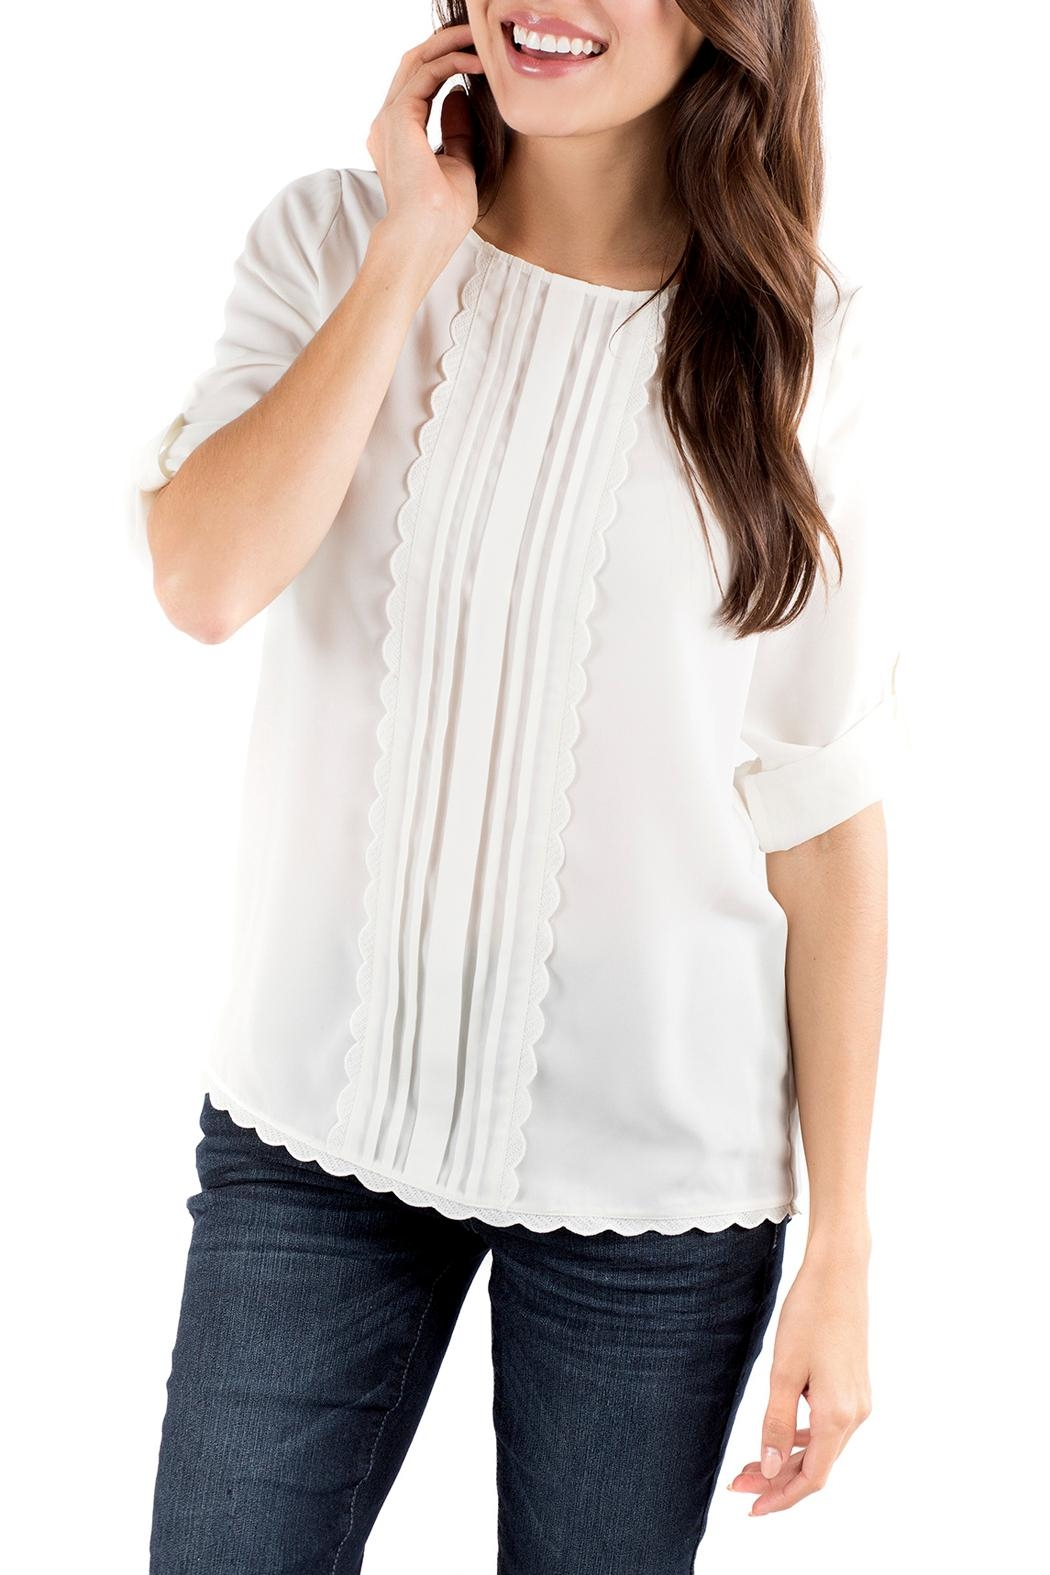 Downeast Basics Wish Blouse - Front Cropped Image